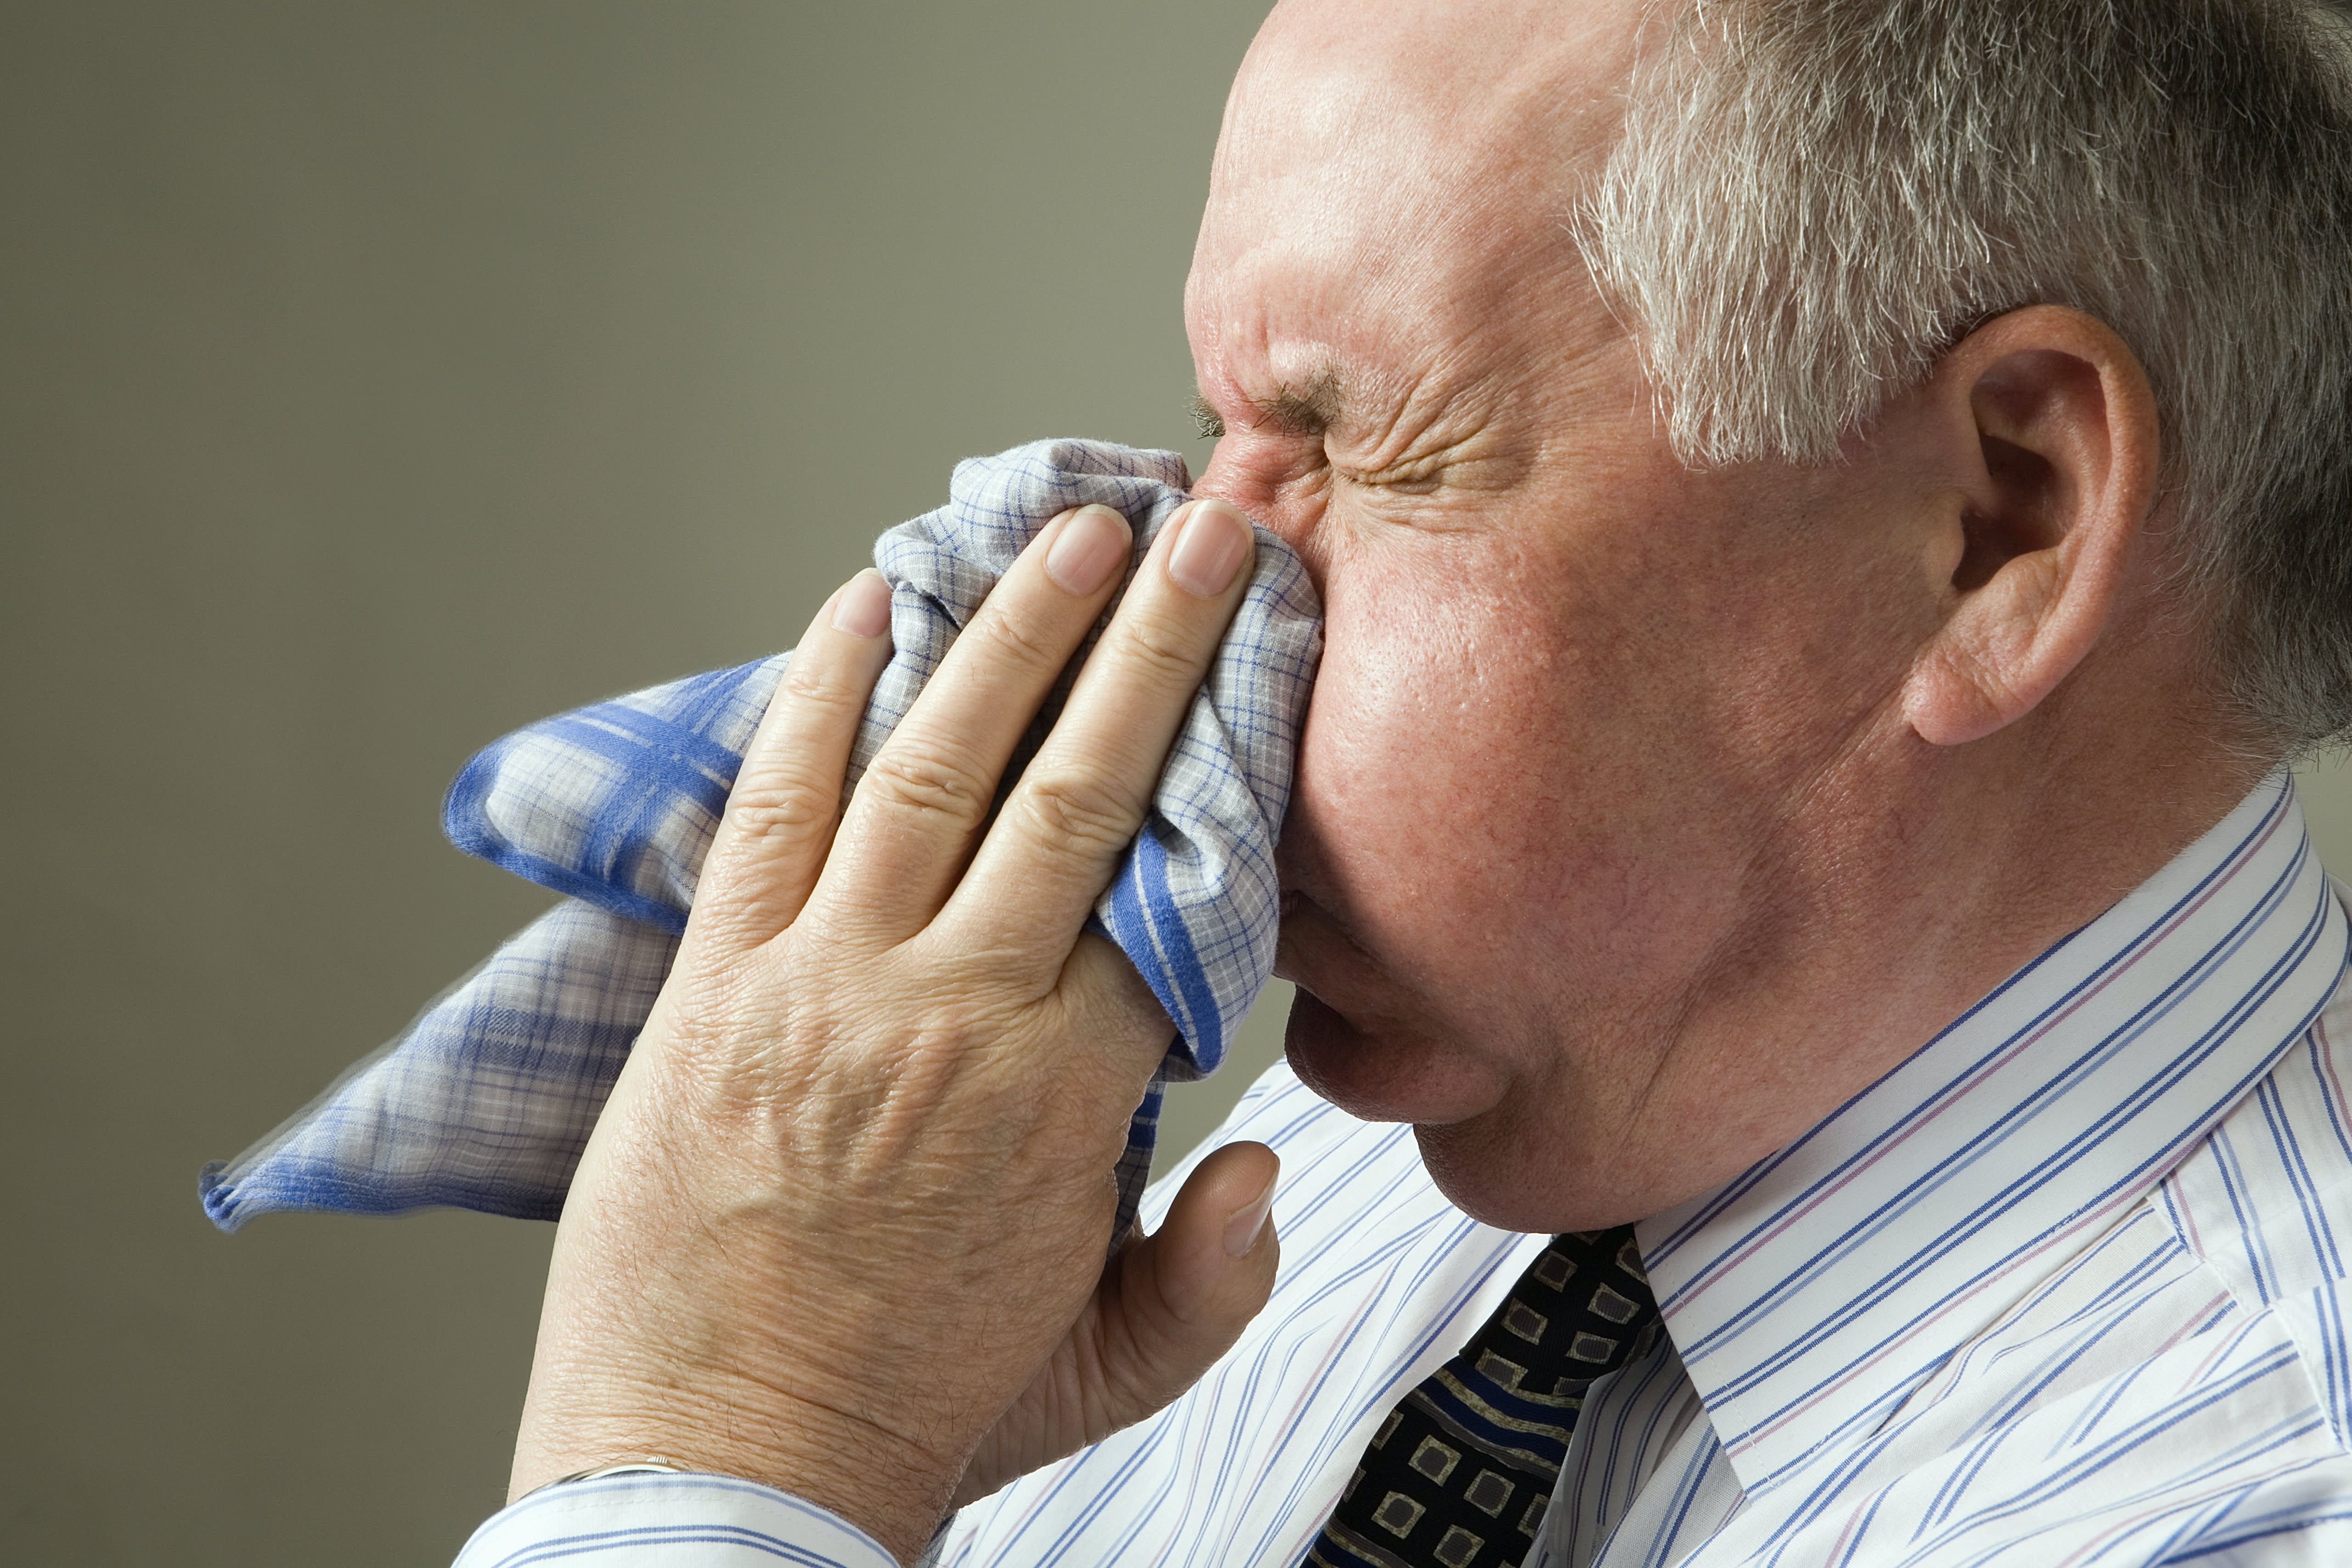 Atchoo! Who's making money out of flu season